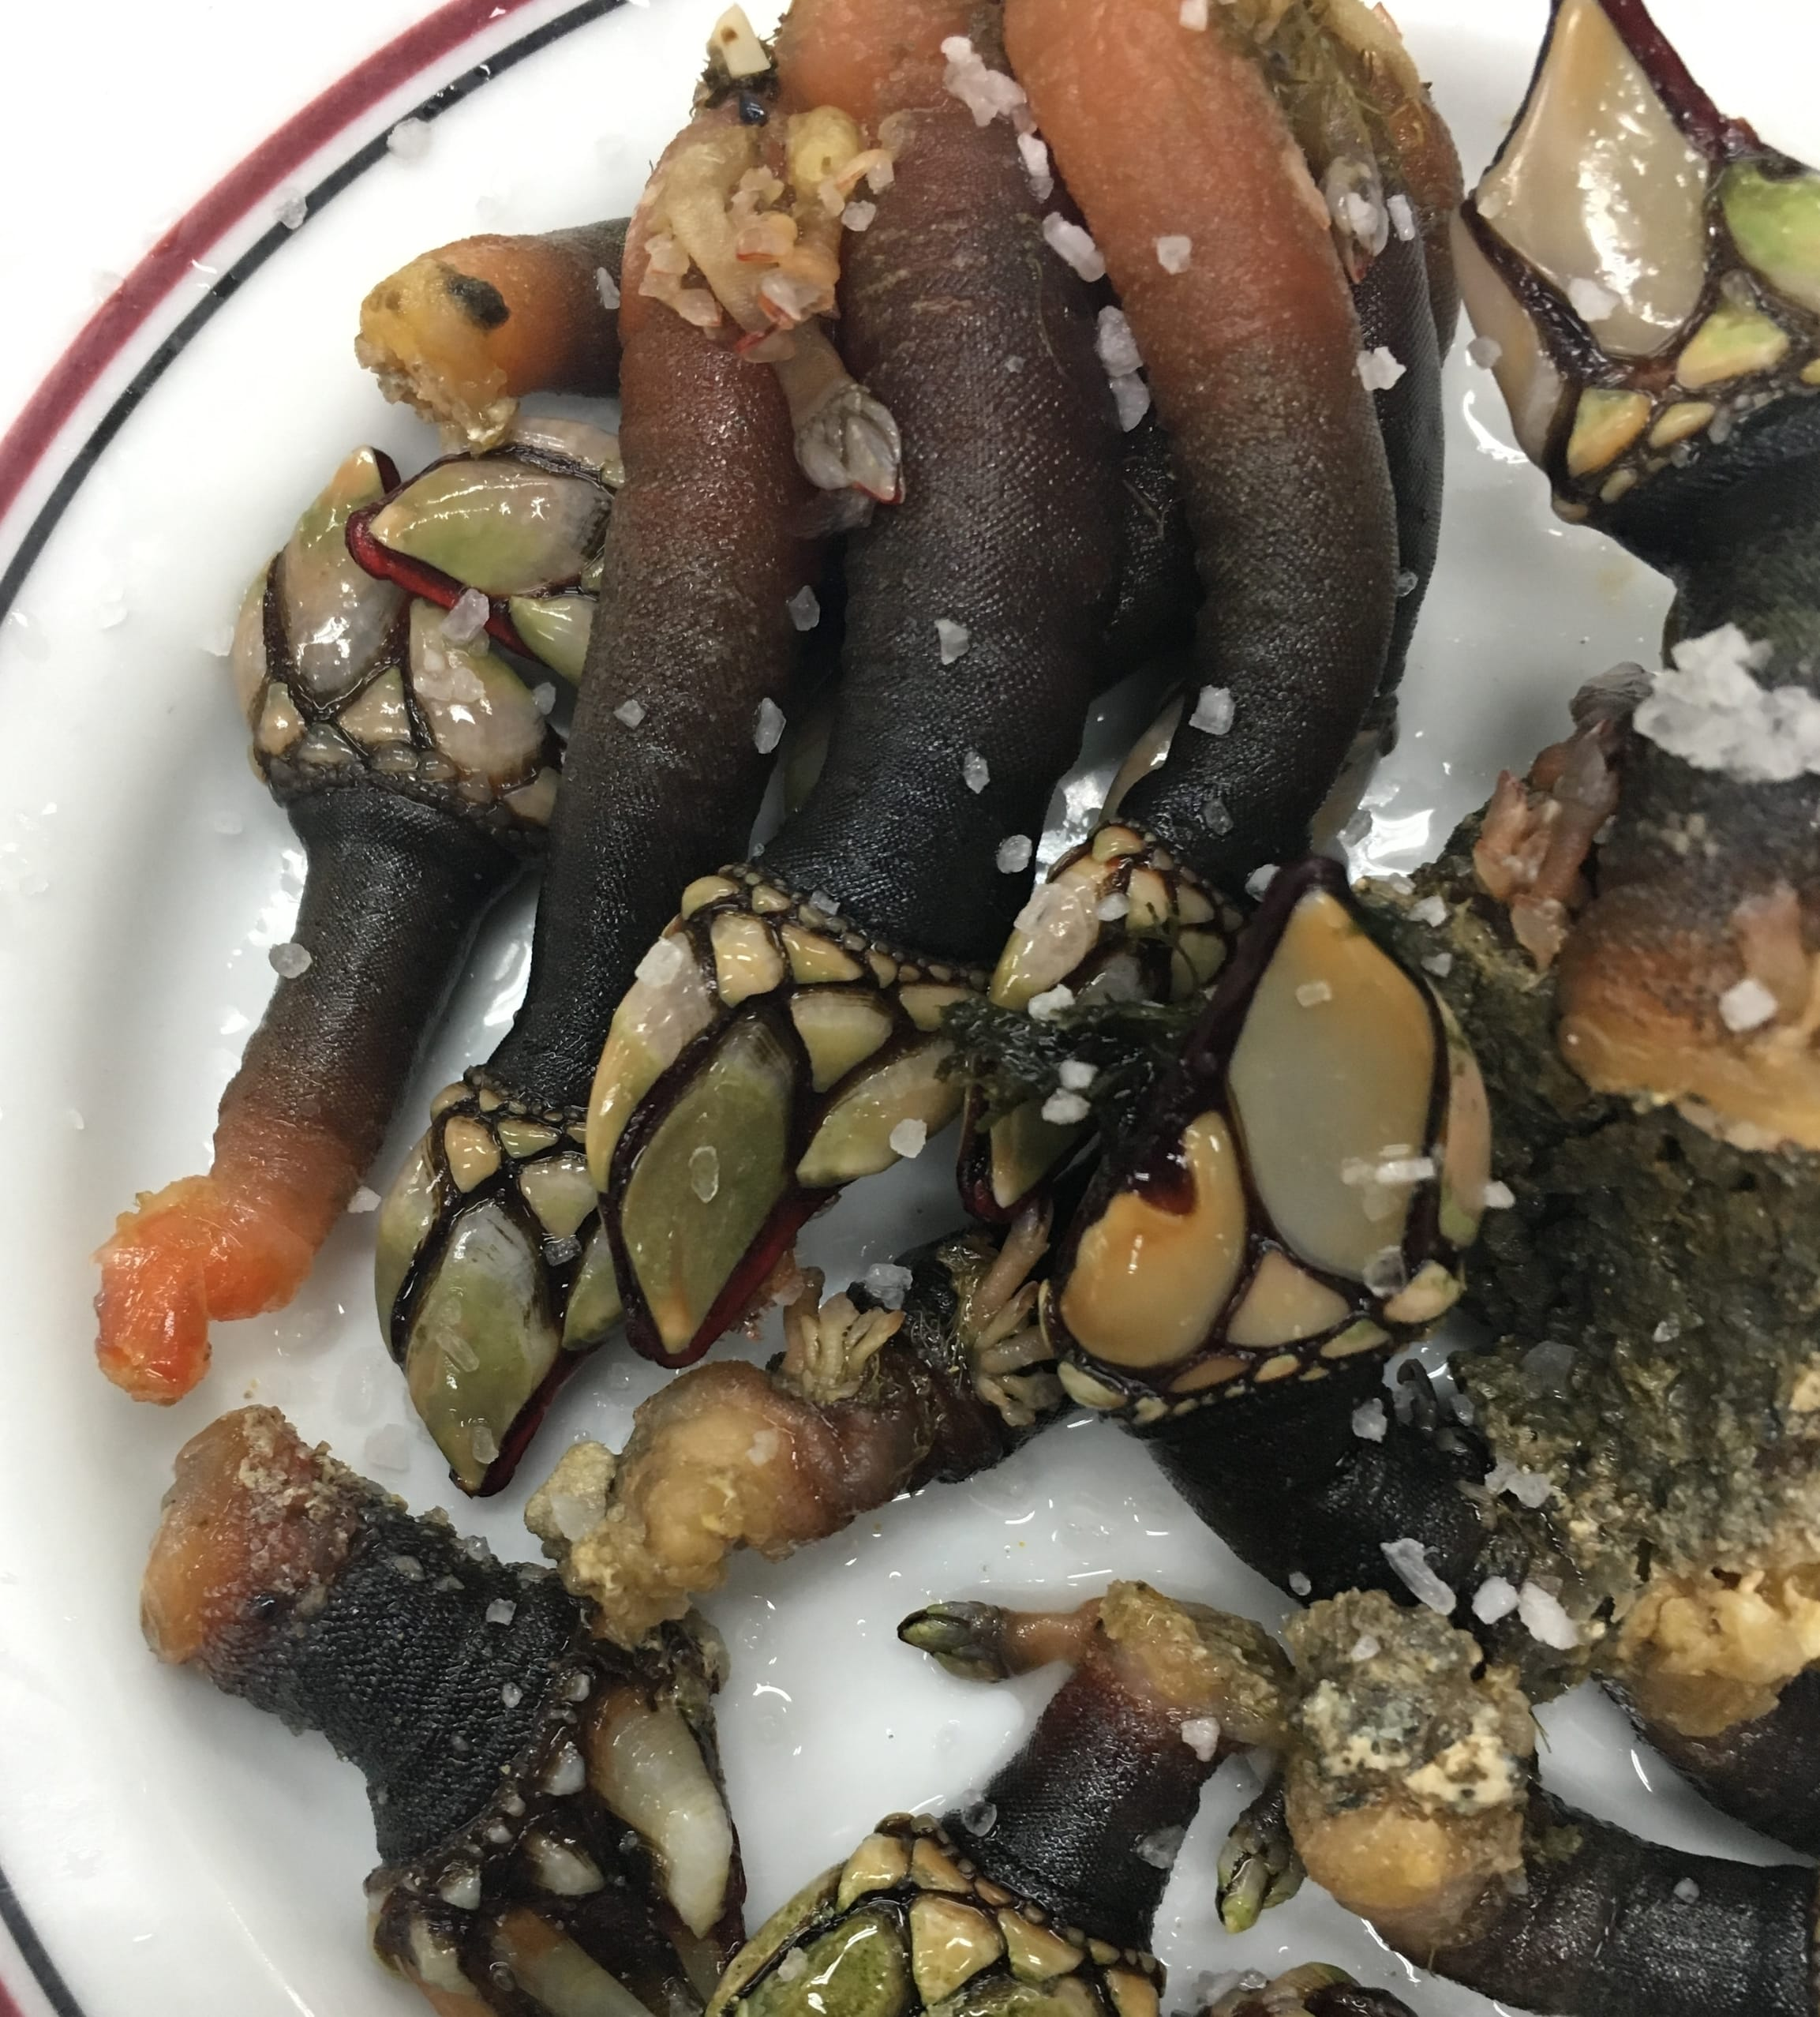 Song of the Sea Food Tour: Barnacles